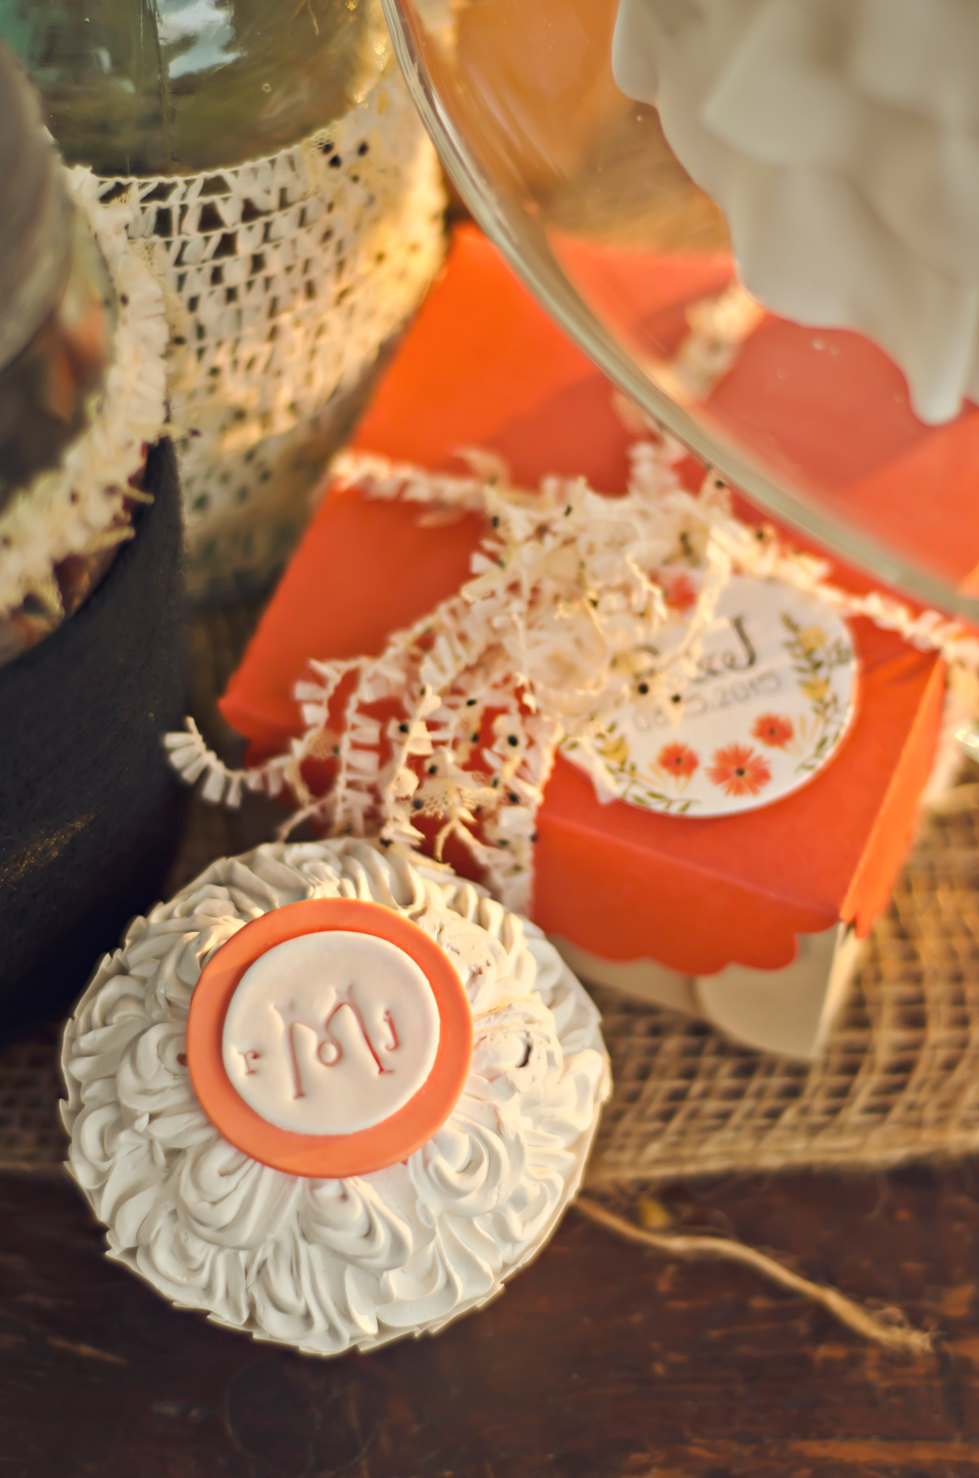 Fondant-wedding-finds-to-add-sweetness-to-handmade-weddings-monogrammed-topper-white-orange.full